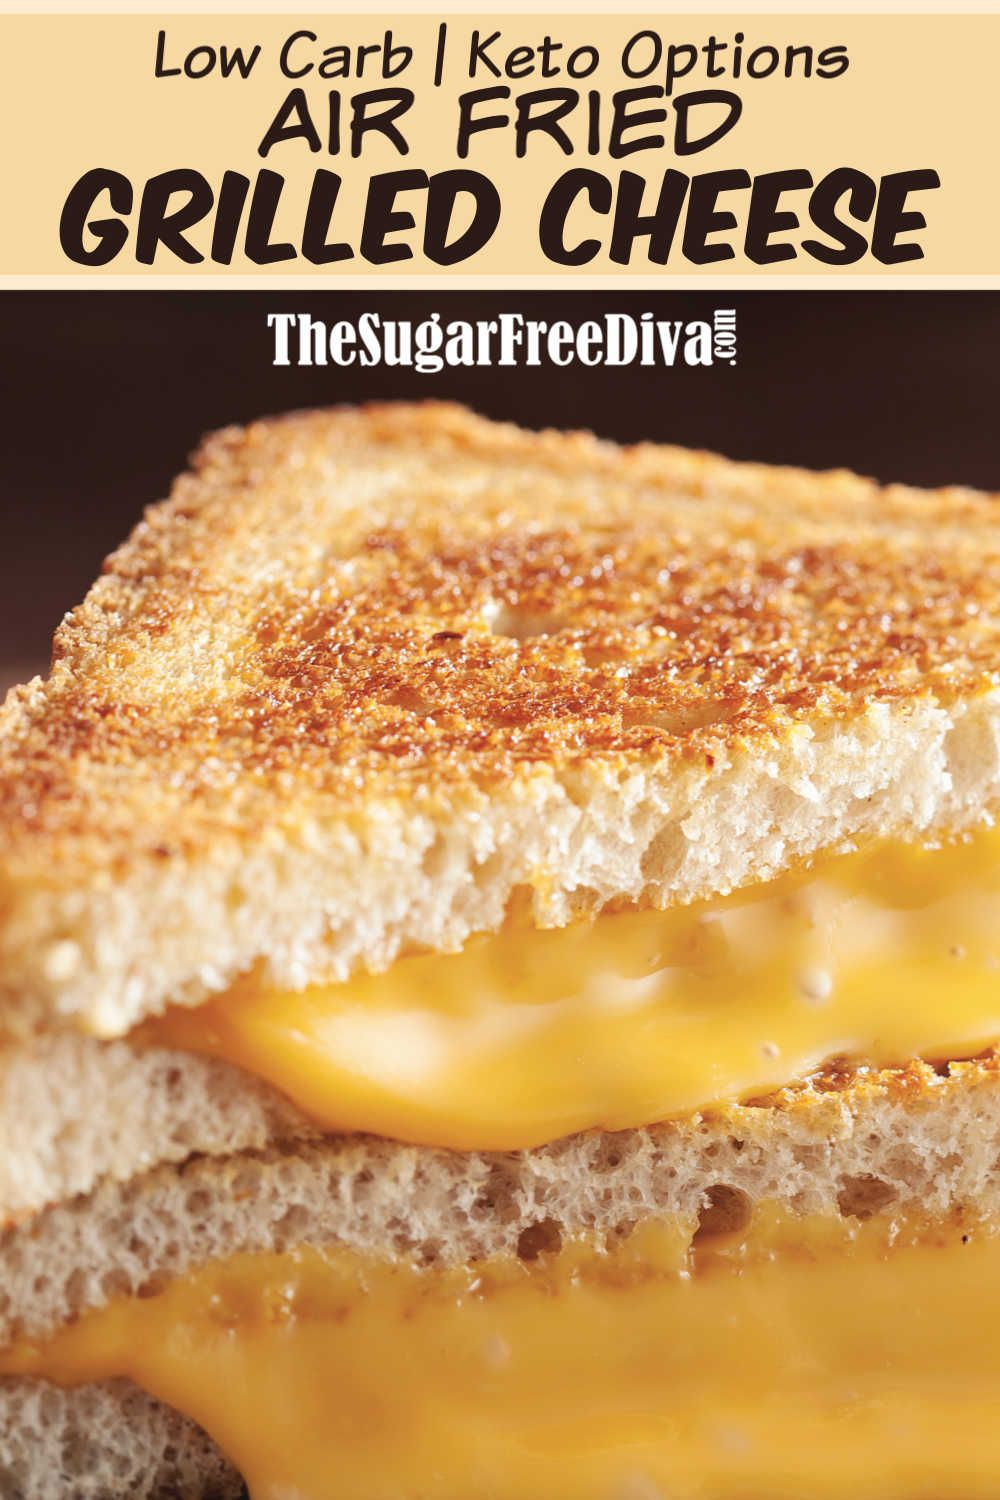 Low Carb Air Fried Grilled Cheese lowcarb keto